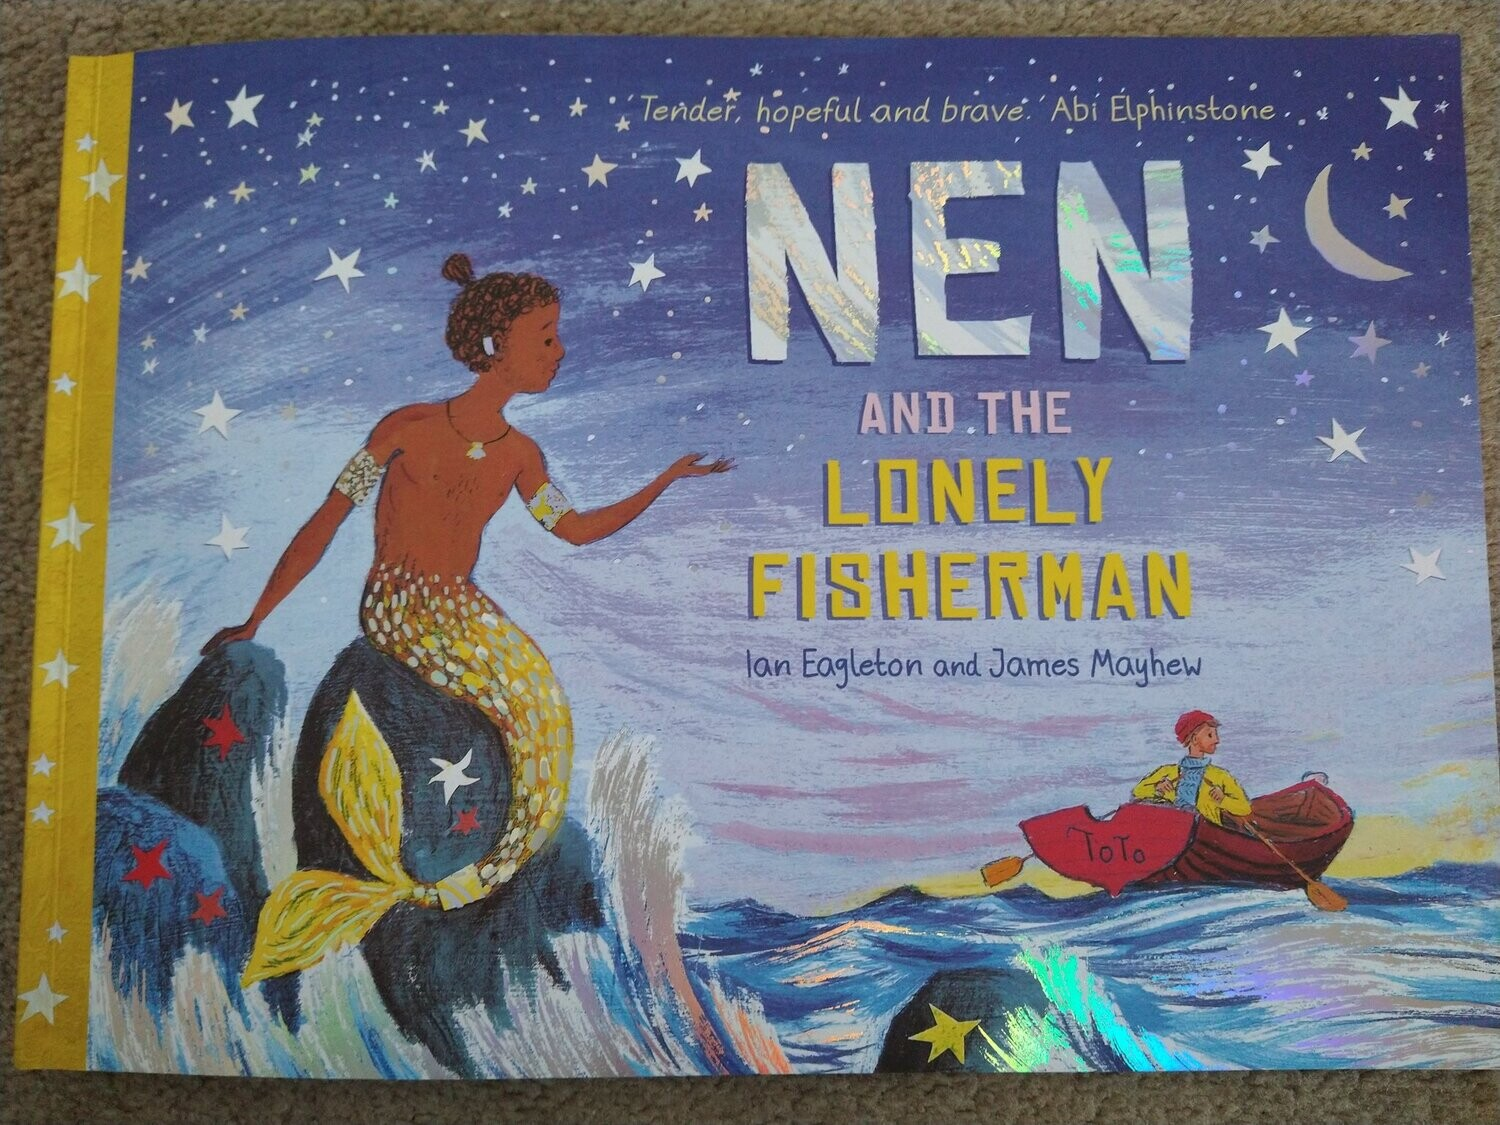 Order: Nen and the Lonely Fisherman by Ian Eagleton and James Mayhew